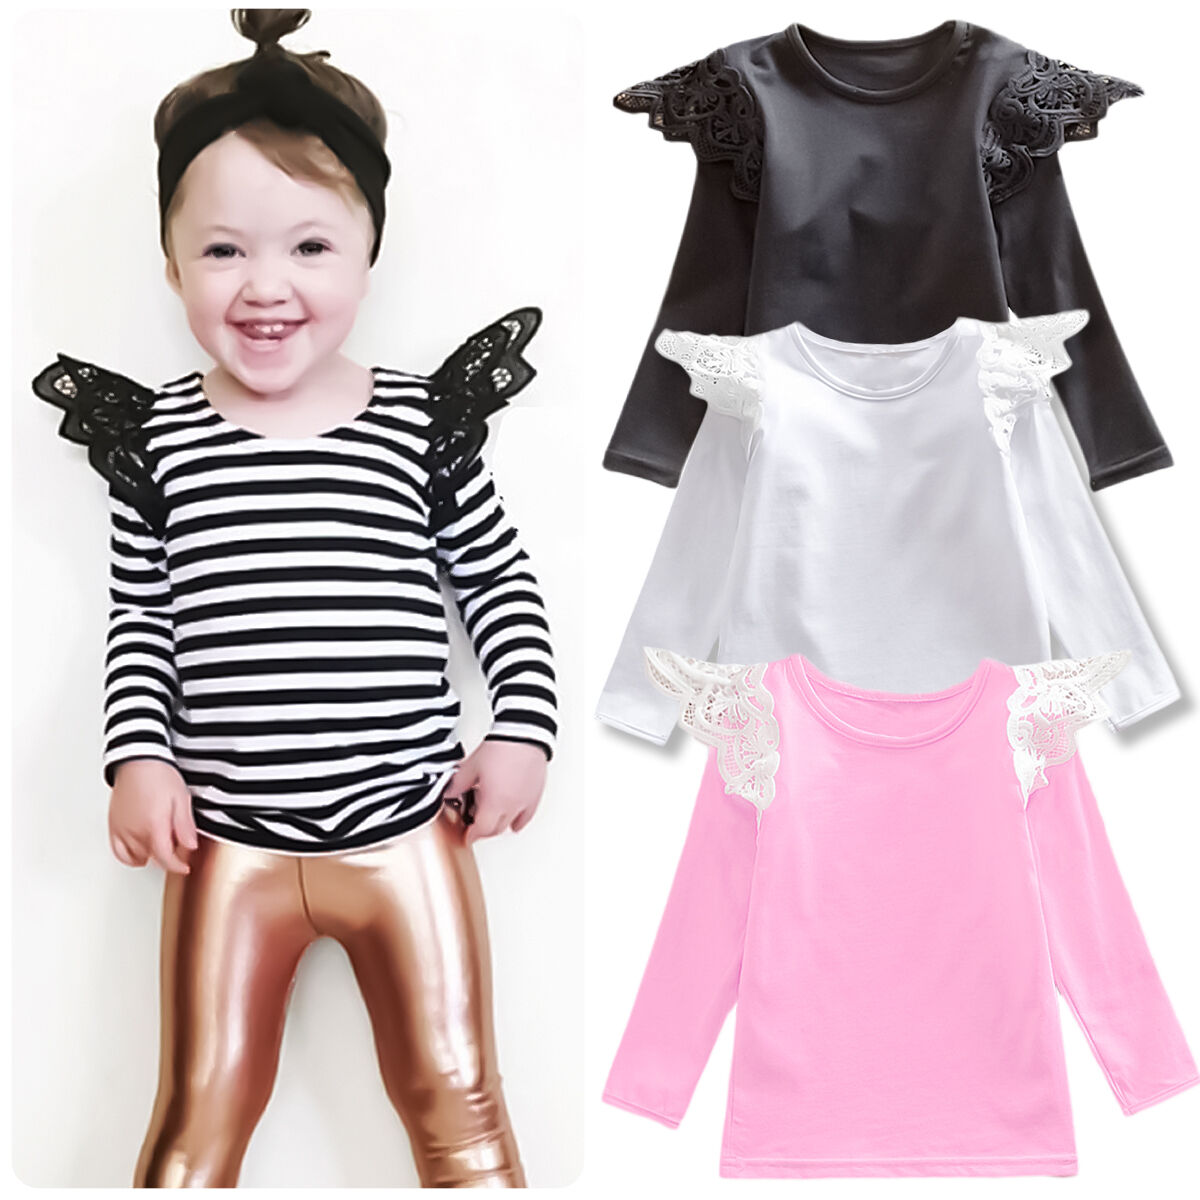 Baby Girls Toddler Kids Long Lace Sleeve Shirts Casual Cotton Top Blouse Clothes